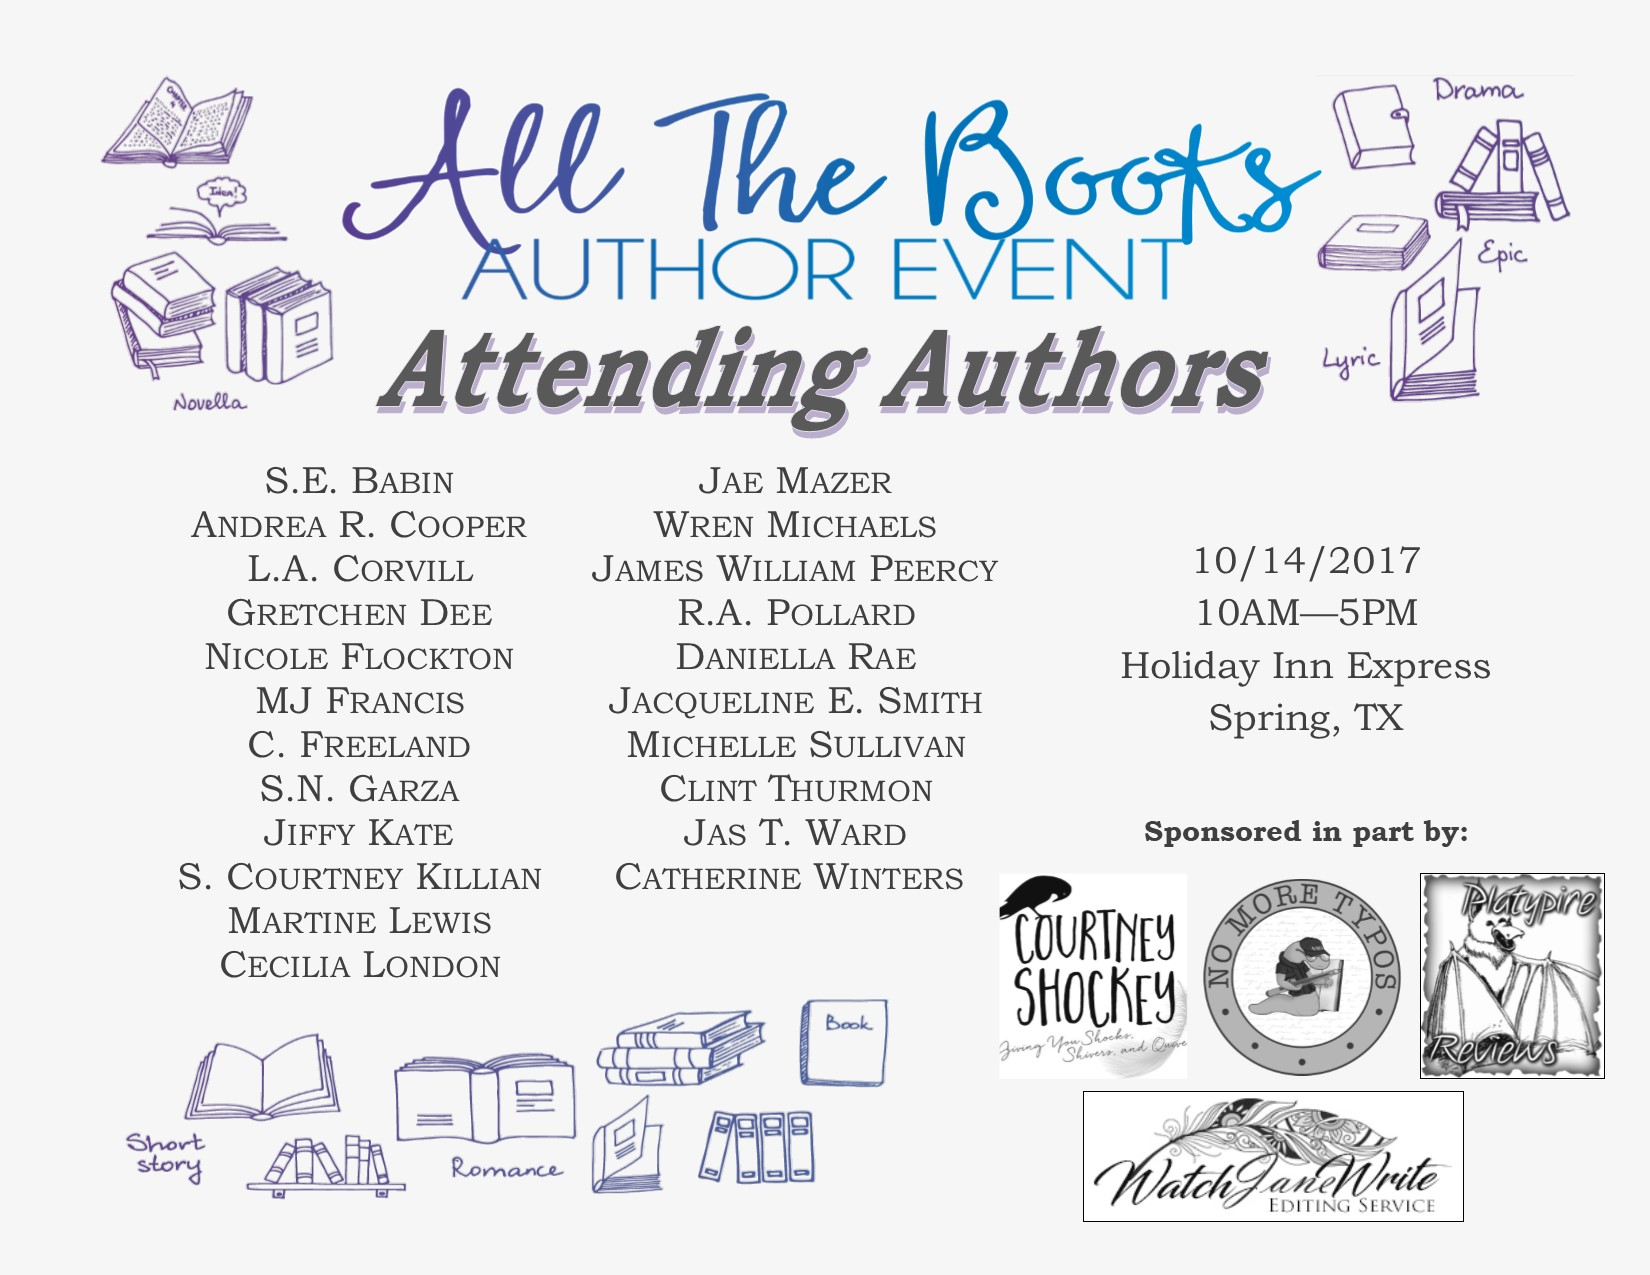 ATTENDING AUTHORS